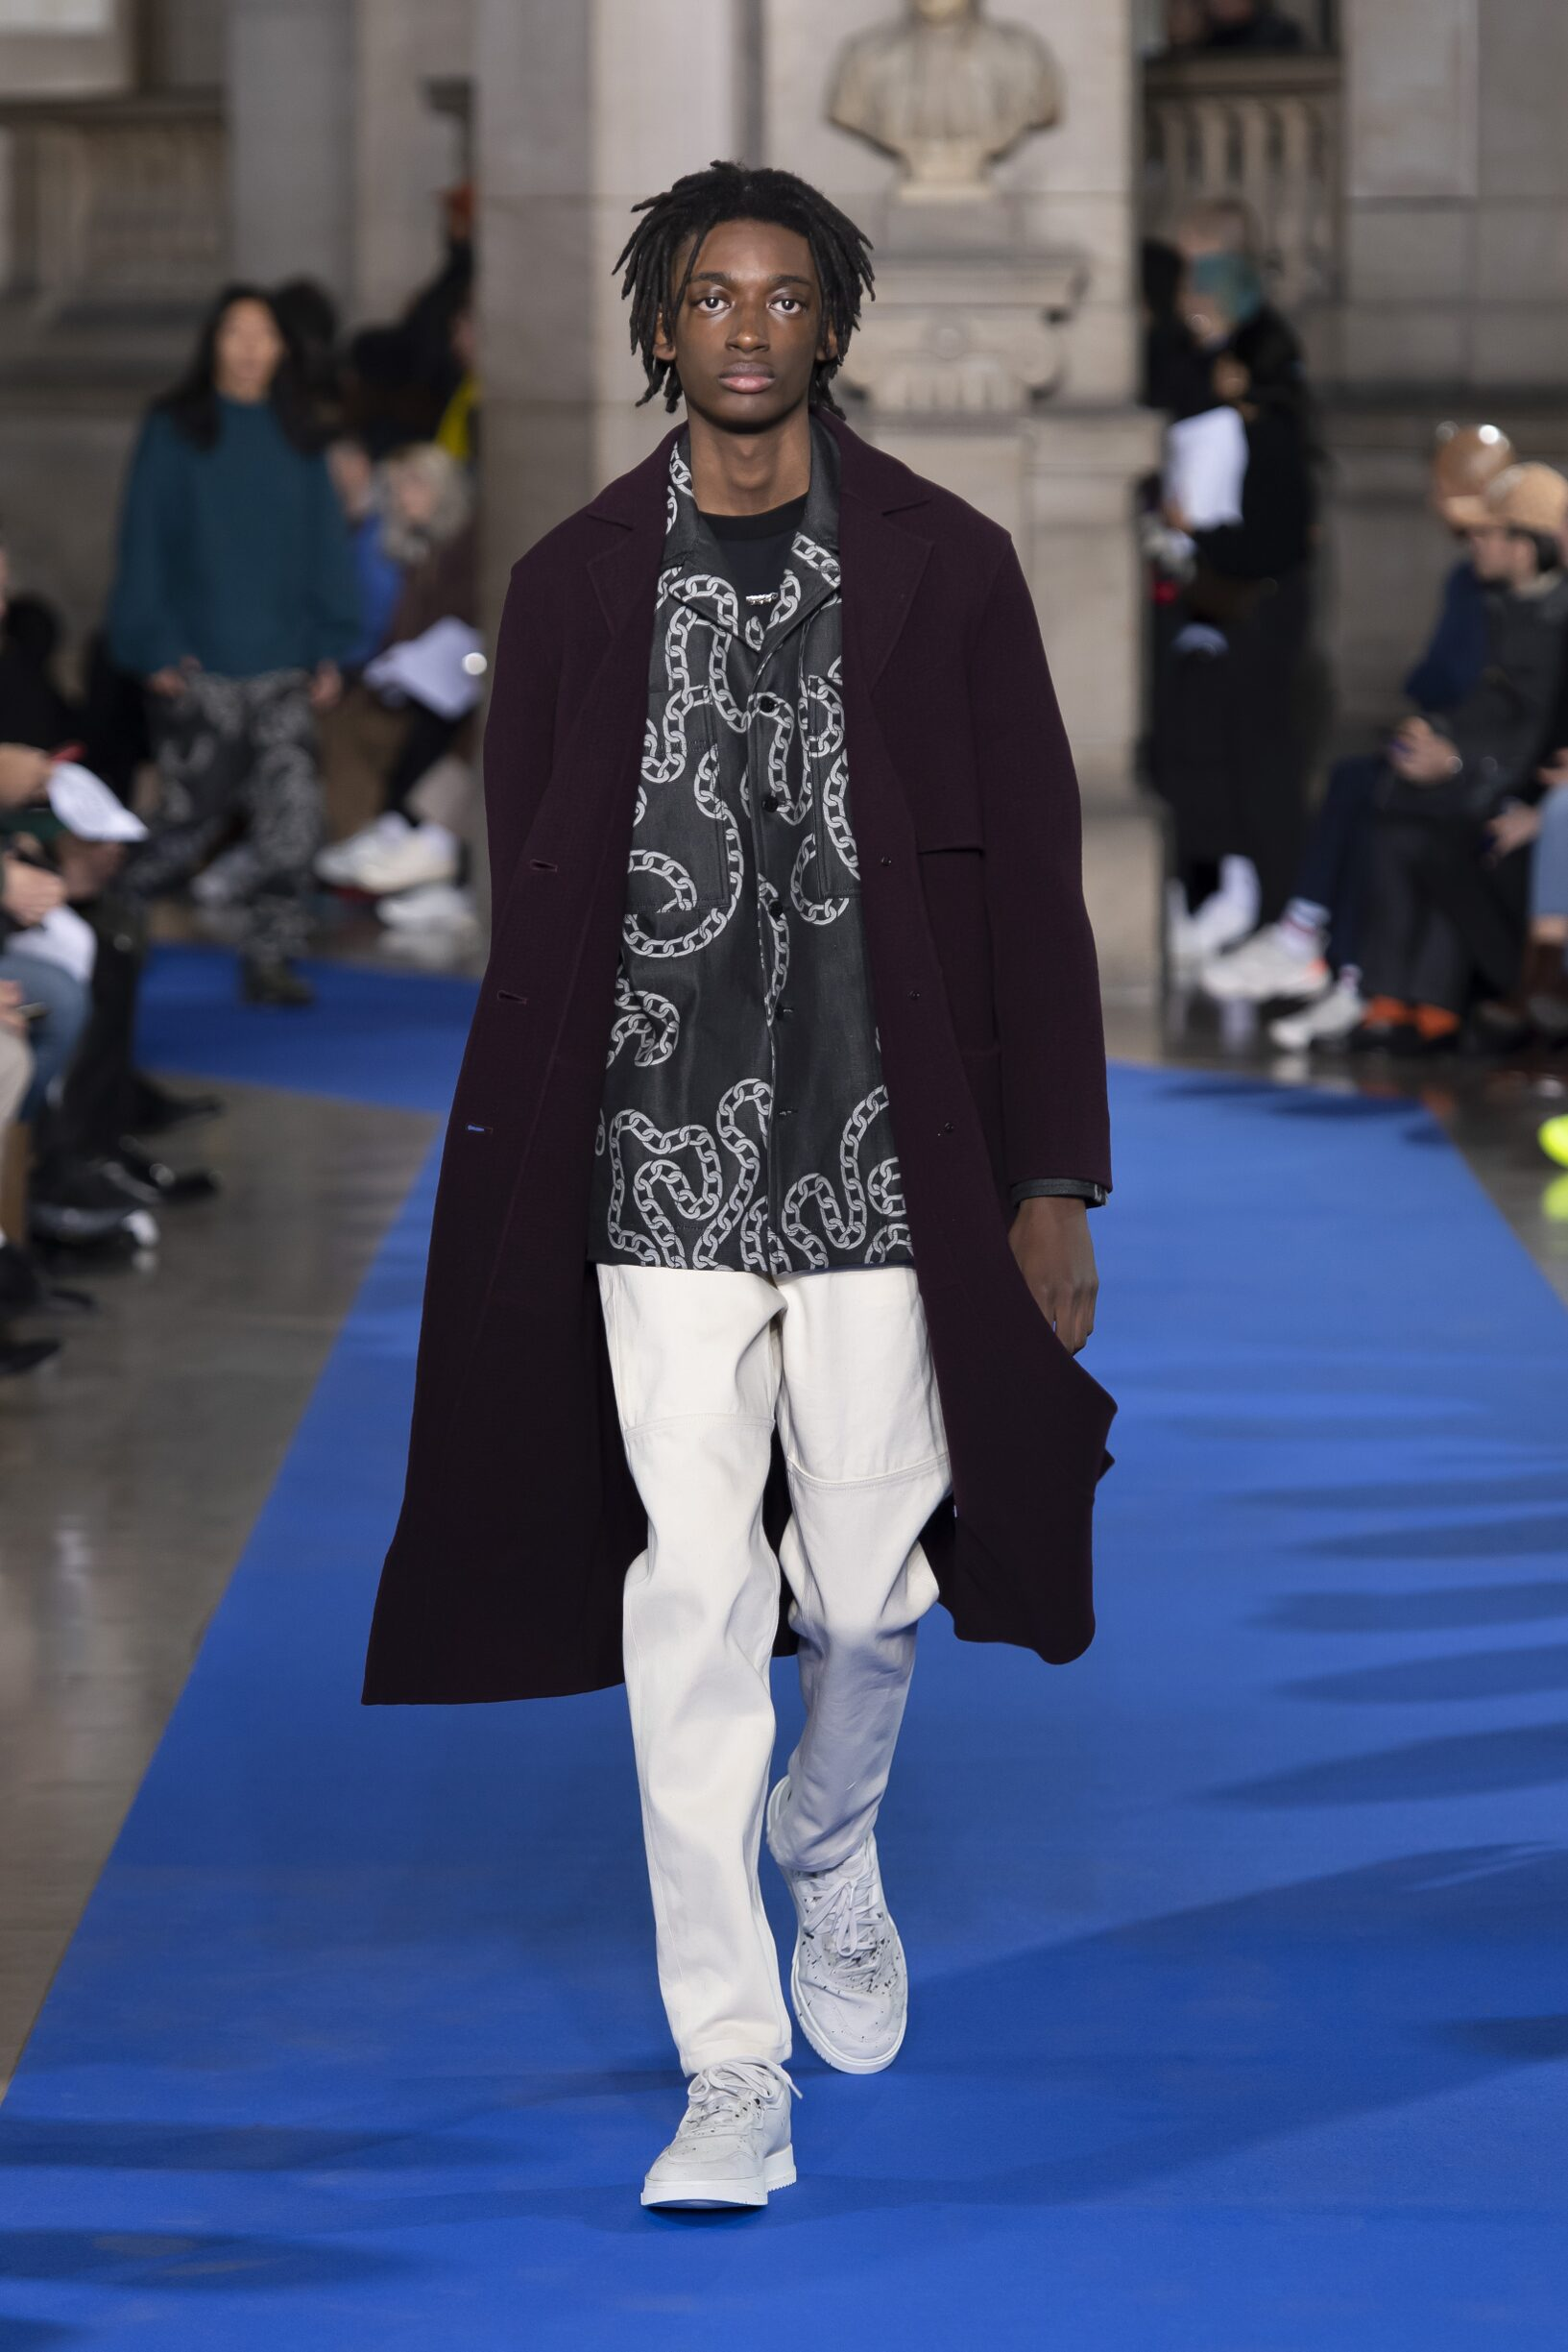 Catwalk Études Man Fashion Show Winter 2019